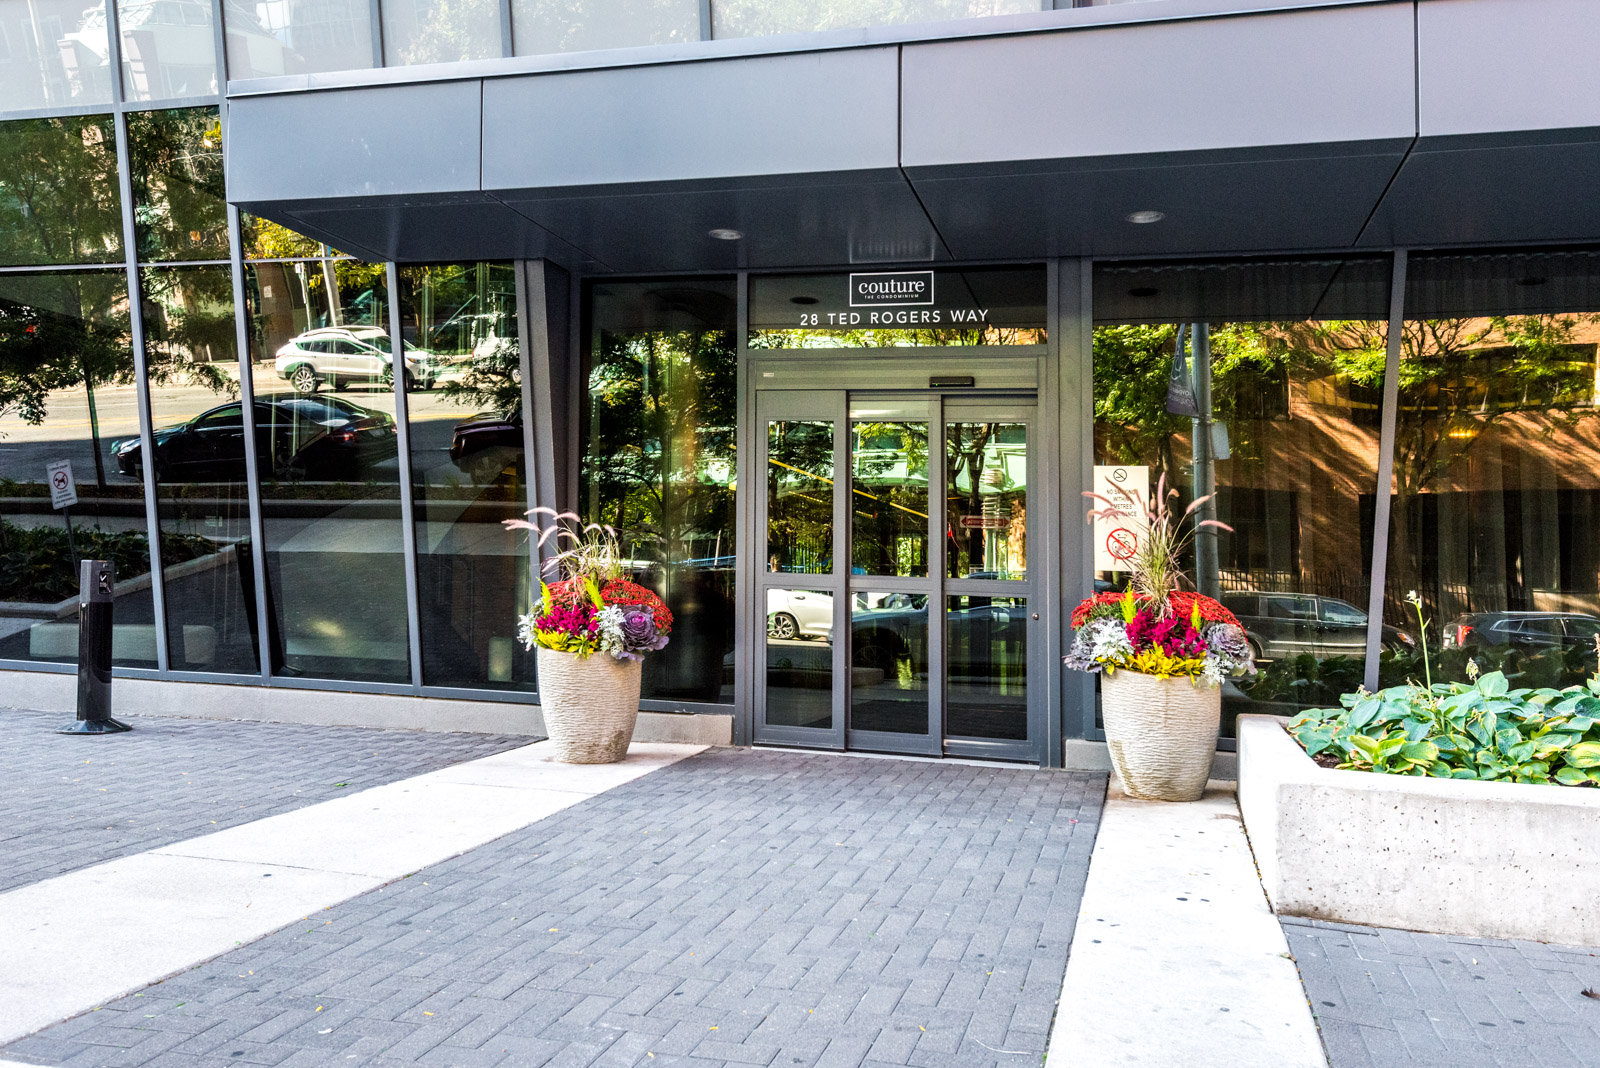 28 Ted Rogers Way (The Couture Condos) front entrance.